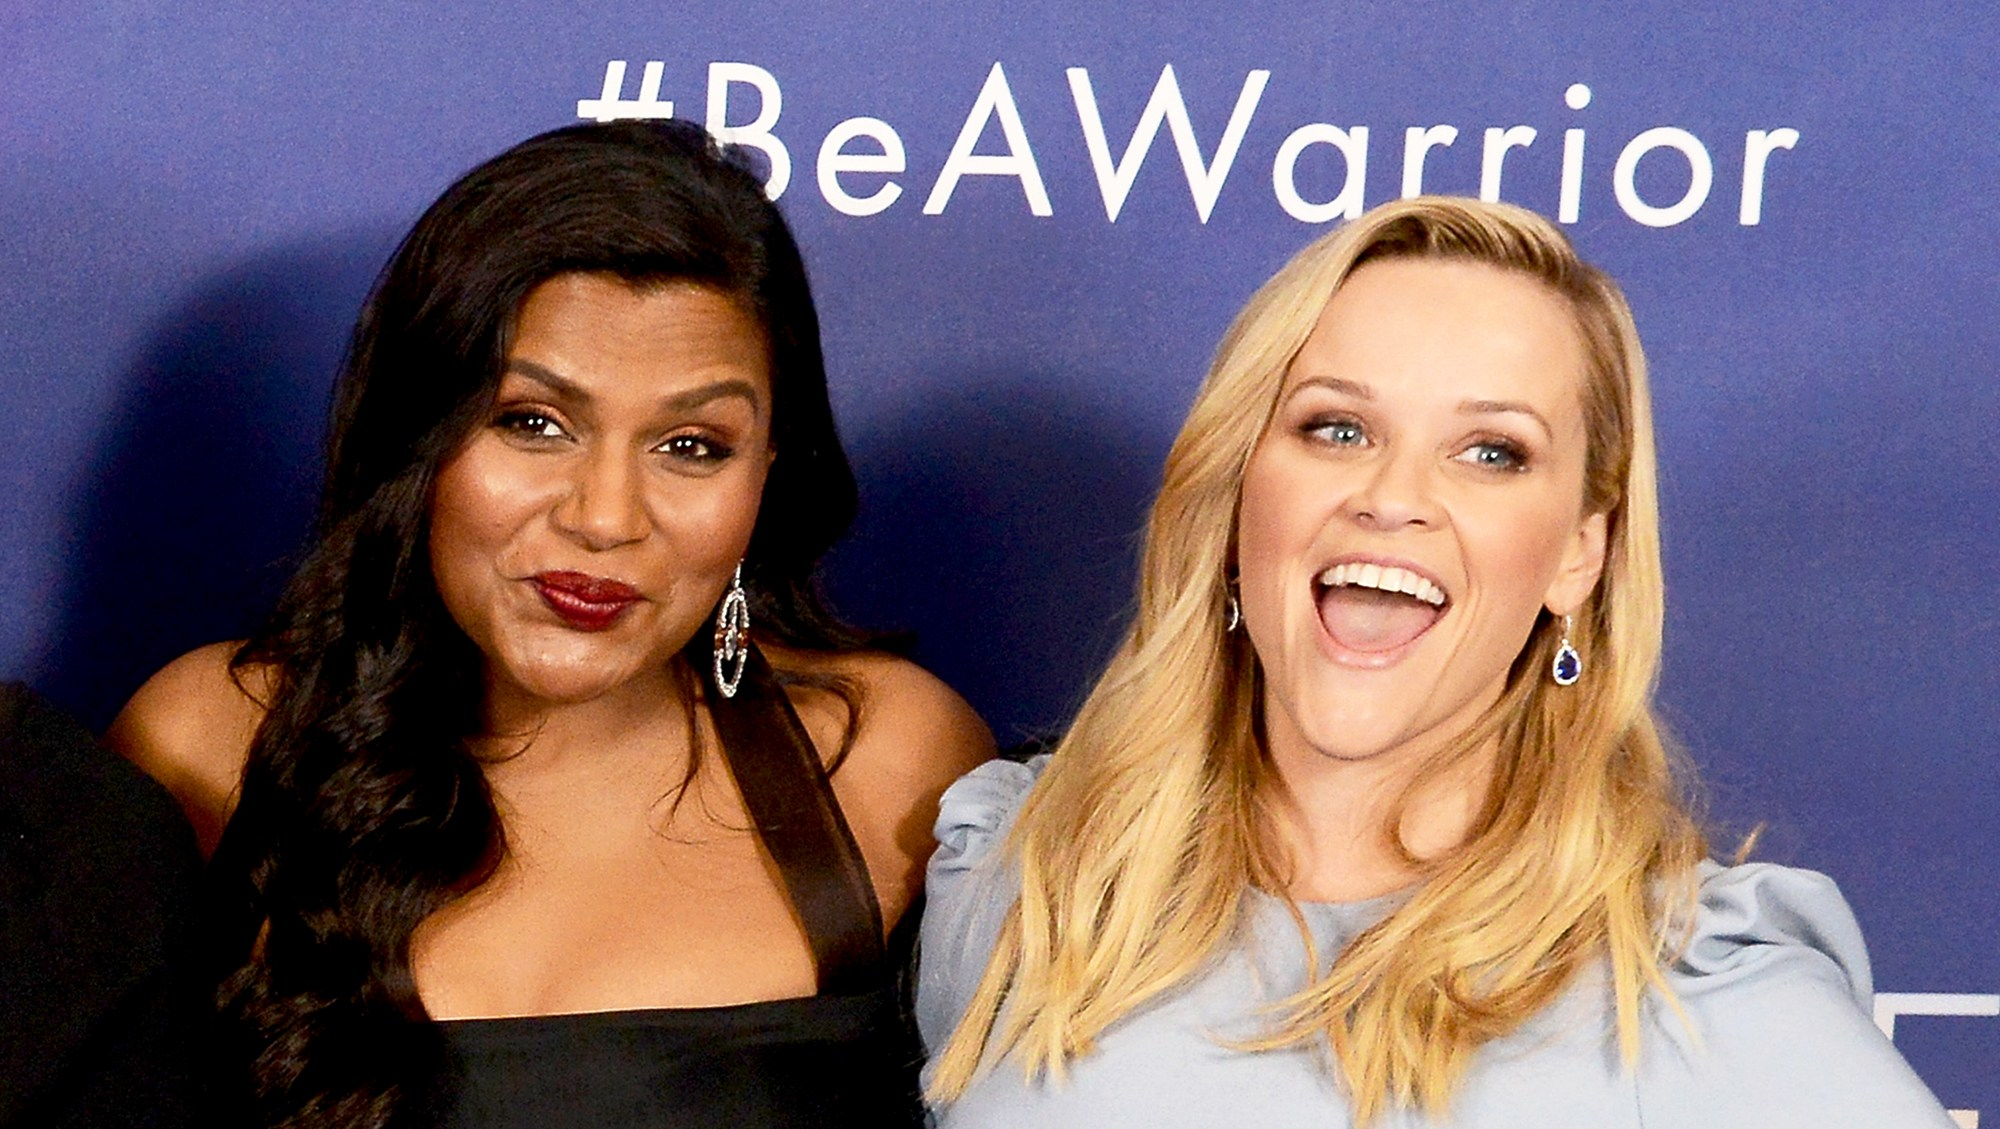 Mindy Kaling and Reese Witherspoon attend the 2018 European premiere of 'A Wrinkle In Time' at BFI IMAX in London, England.